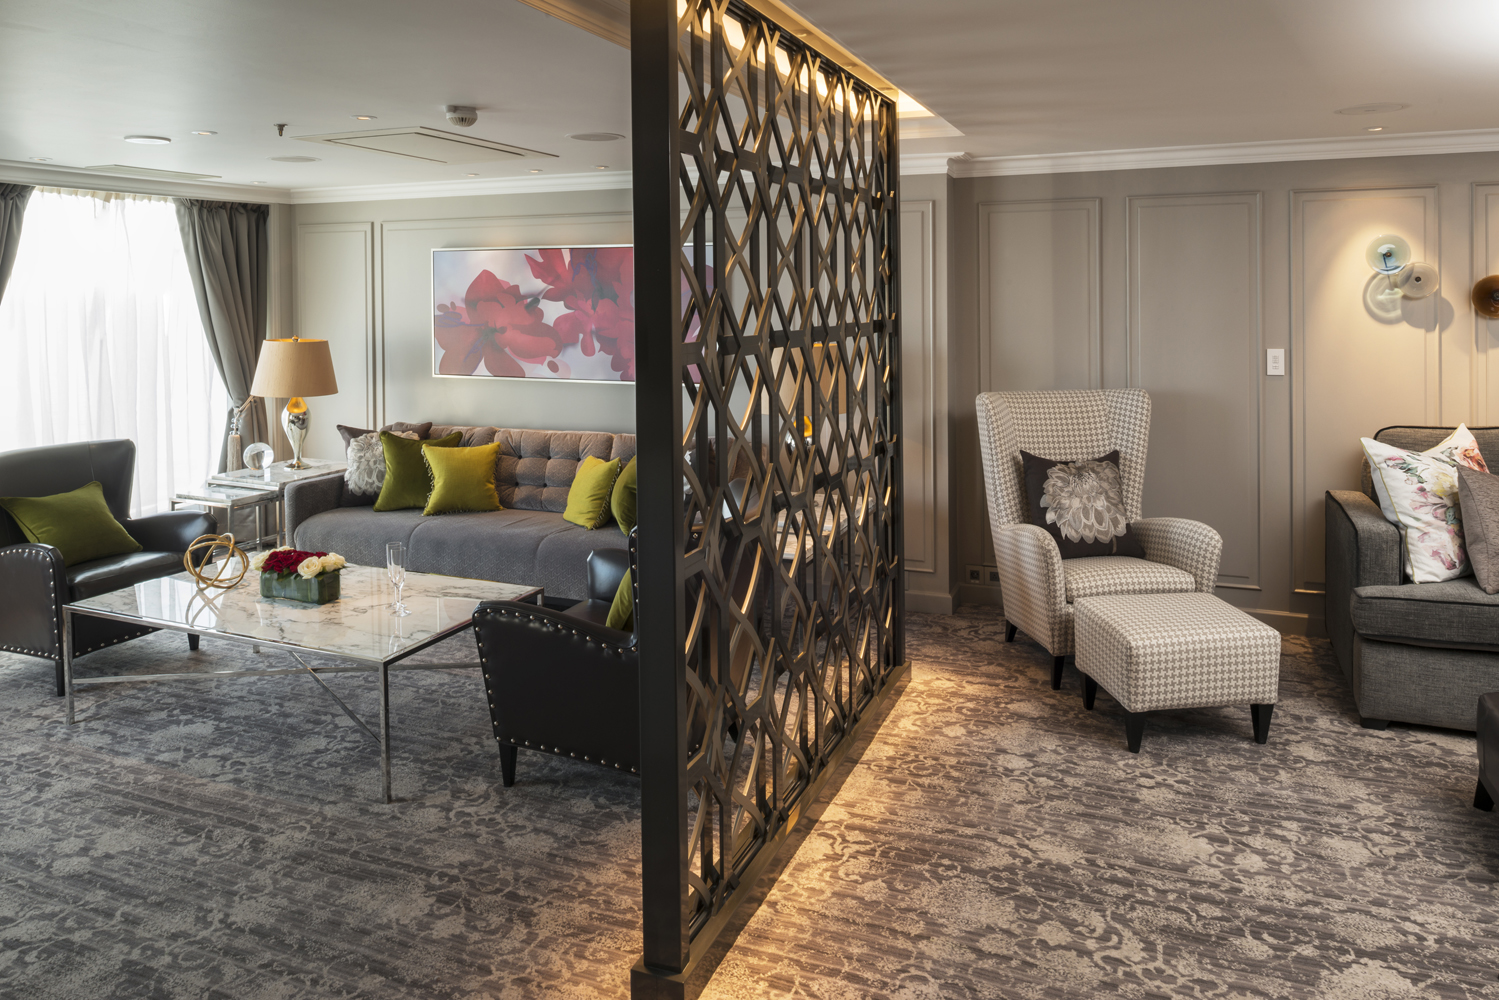 Crystal Cruises Serenity Cabins II BY IV DESIGNII BY IV